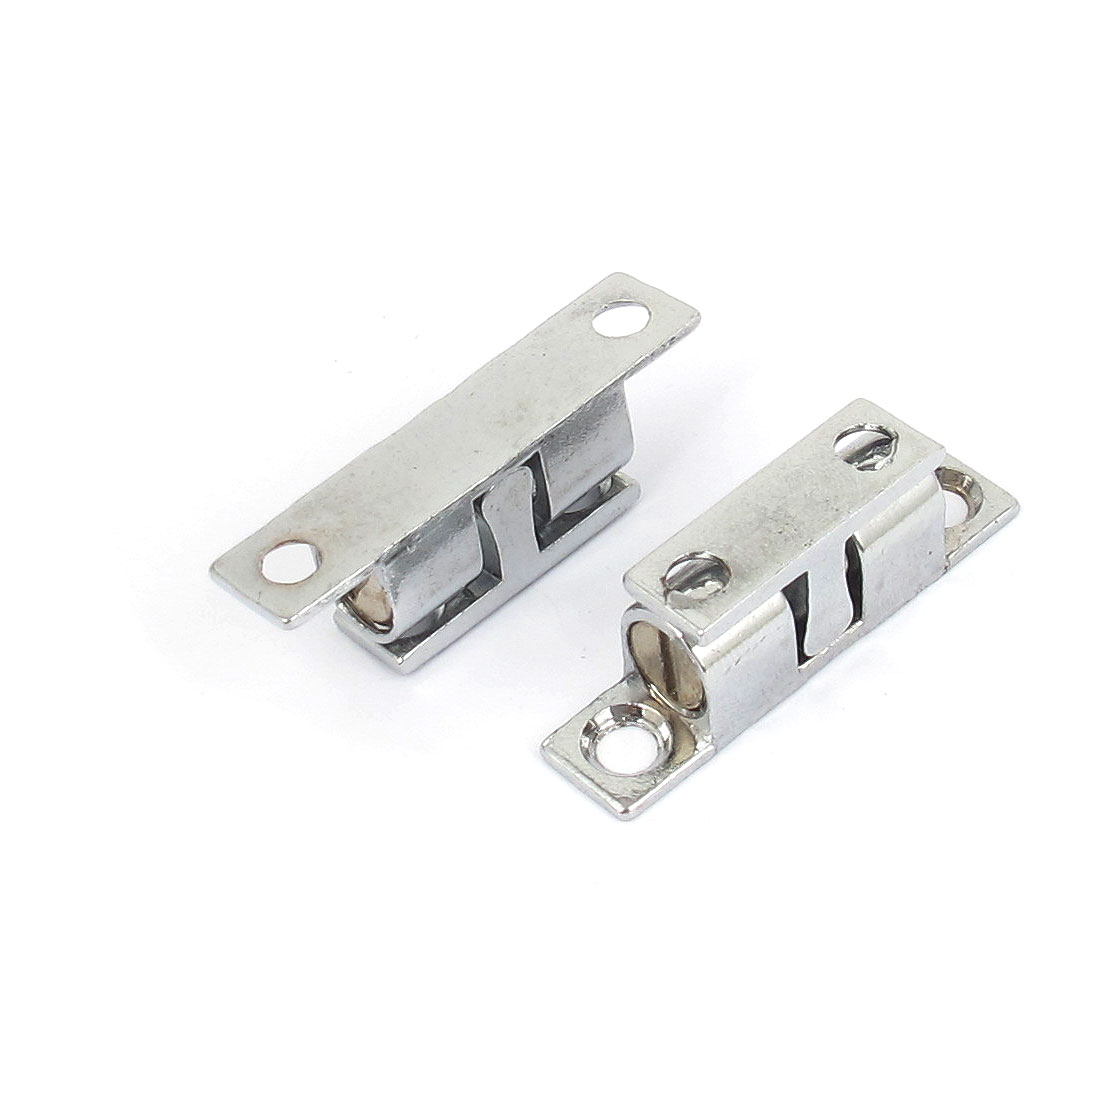 Cupboard Cabinet Door Metal Double Ball Catch Latch 40mm Length Silver Tone 2pcs